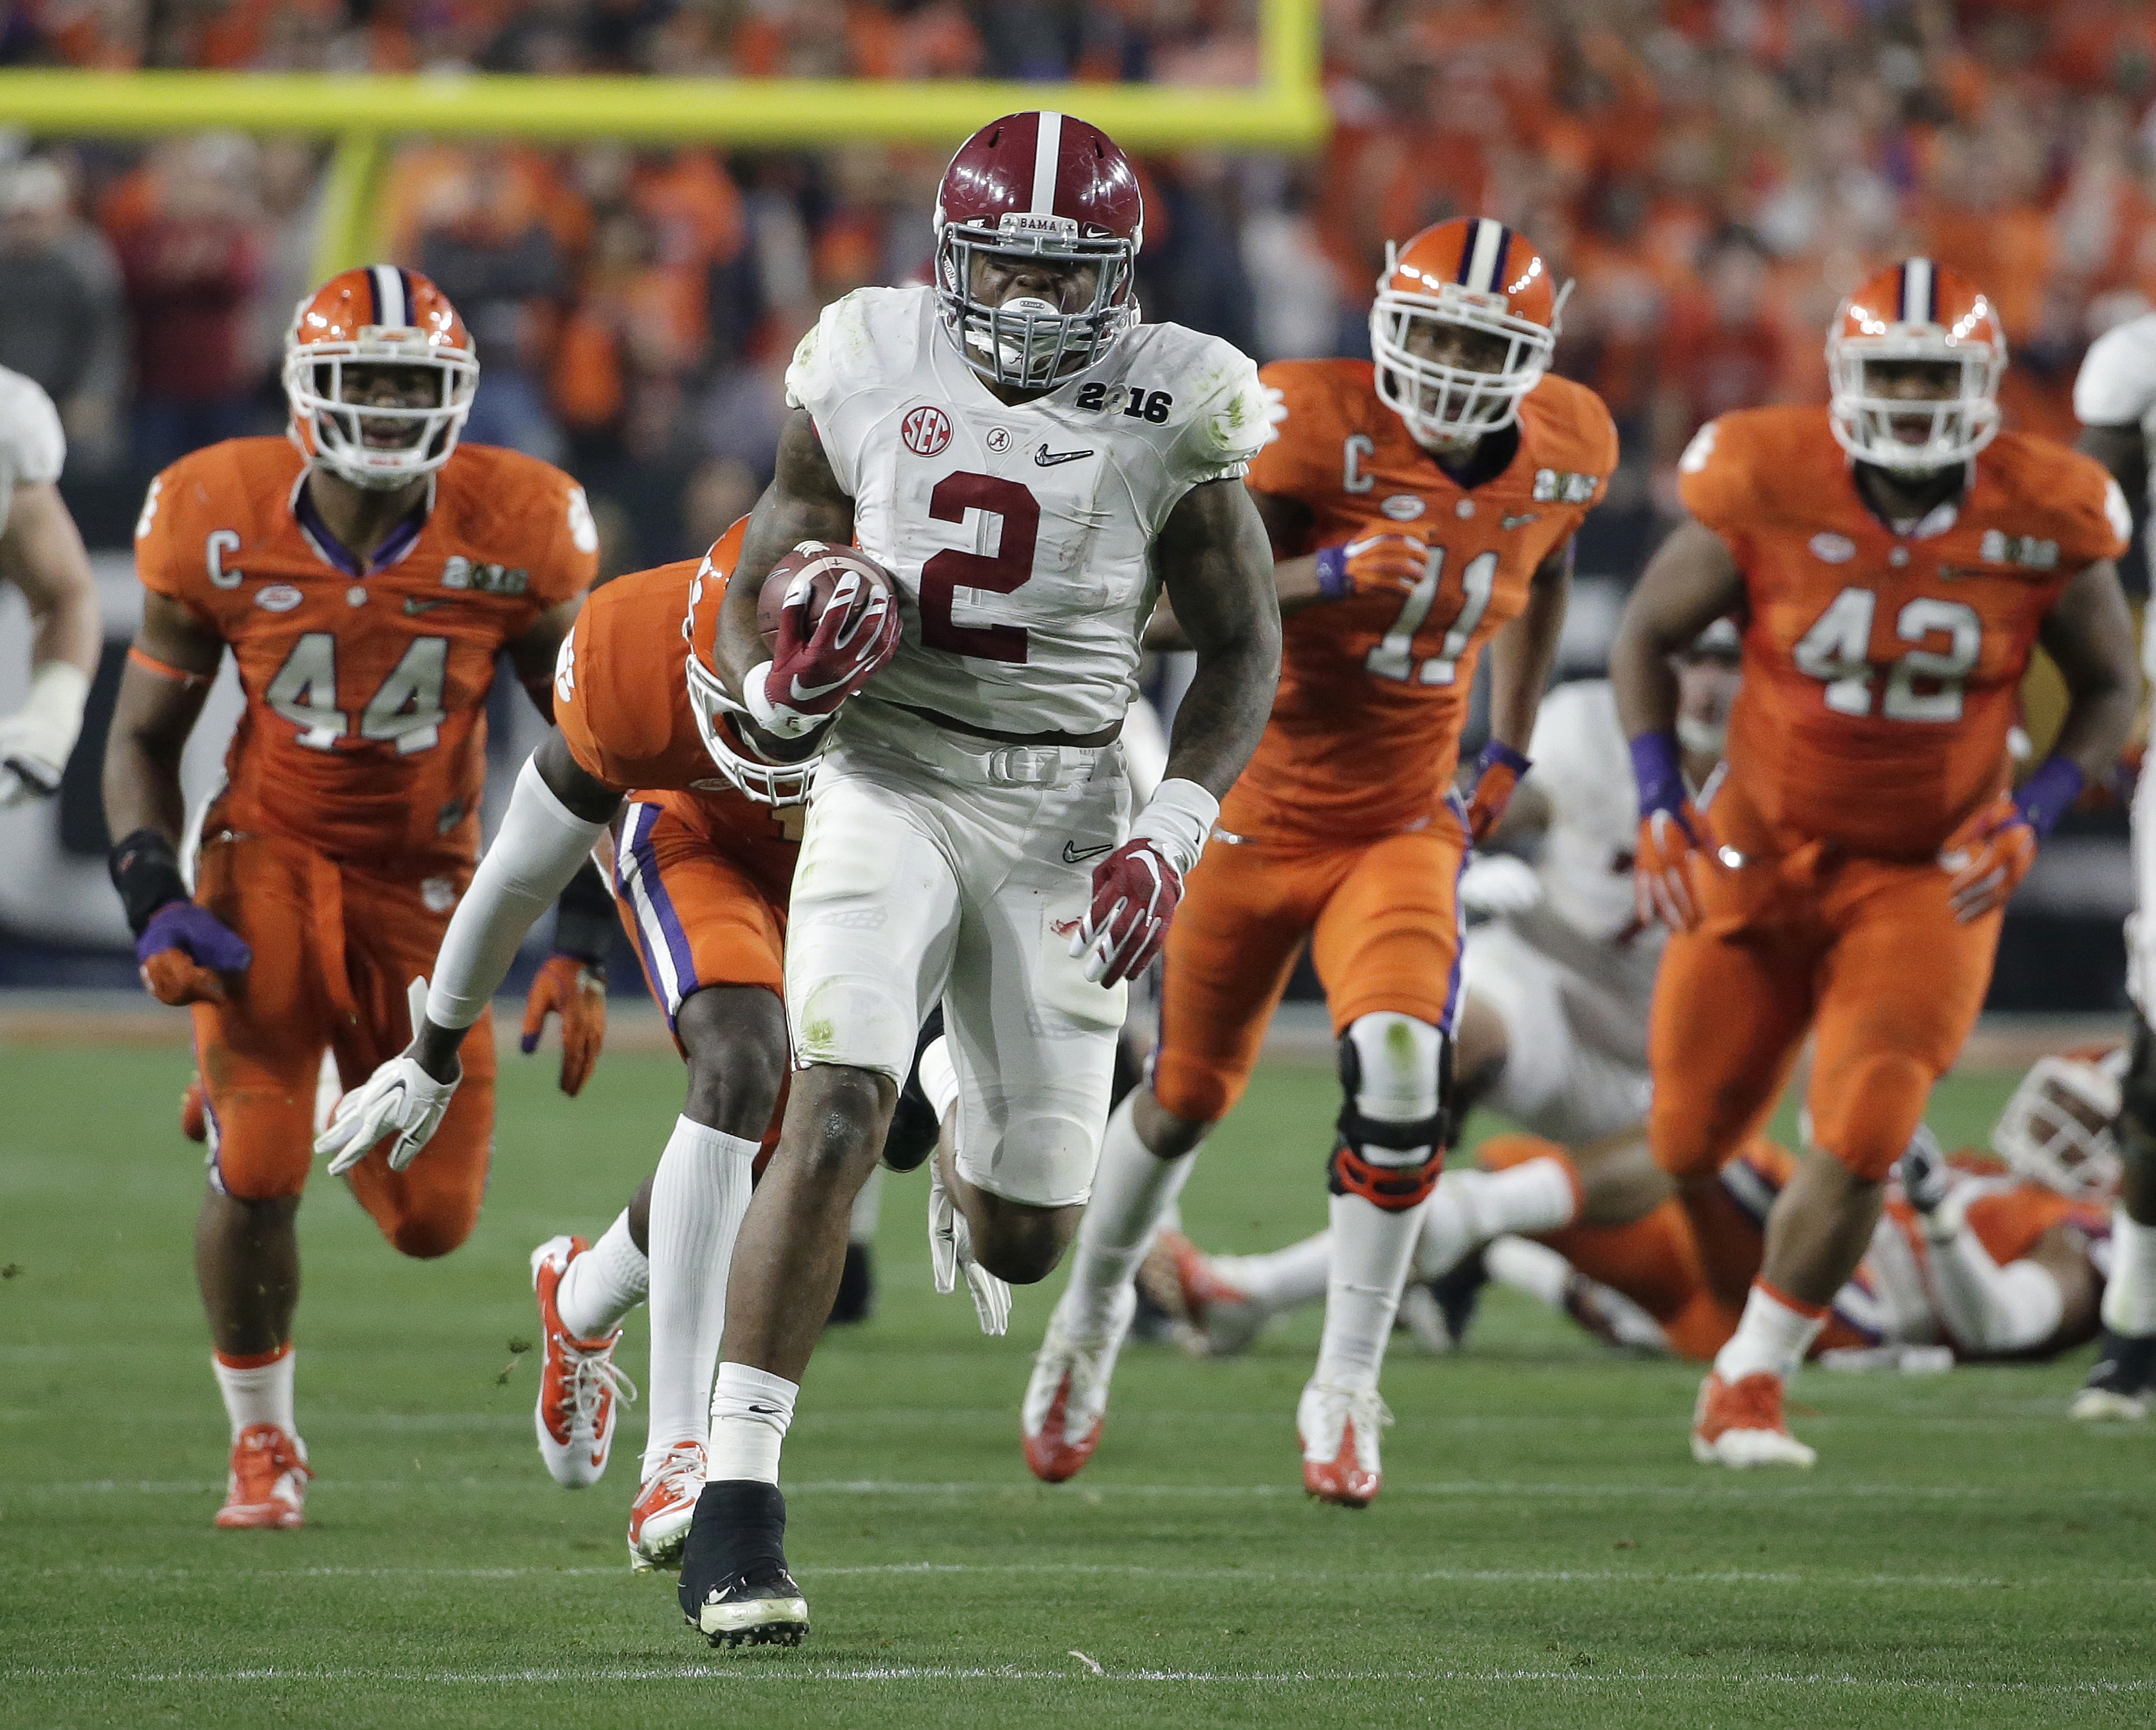 Alabama's Derrick Henry runs for a touchdown during the first half of the NCAA college football playoff championship game Monday, Jan. 11, 2016, in Glendale, Ariz. (AP Photo/Chris Carlson)